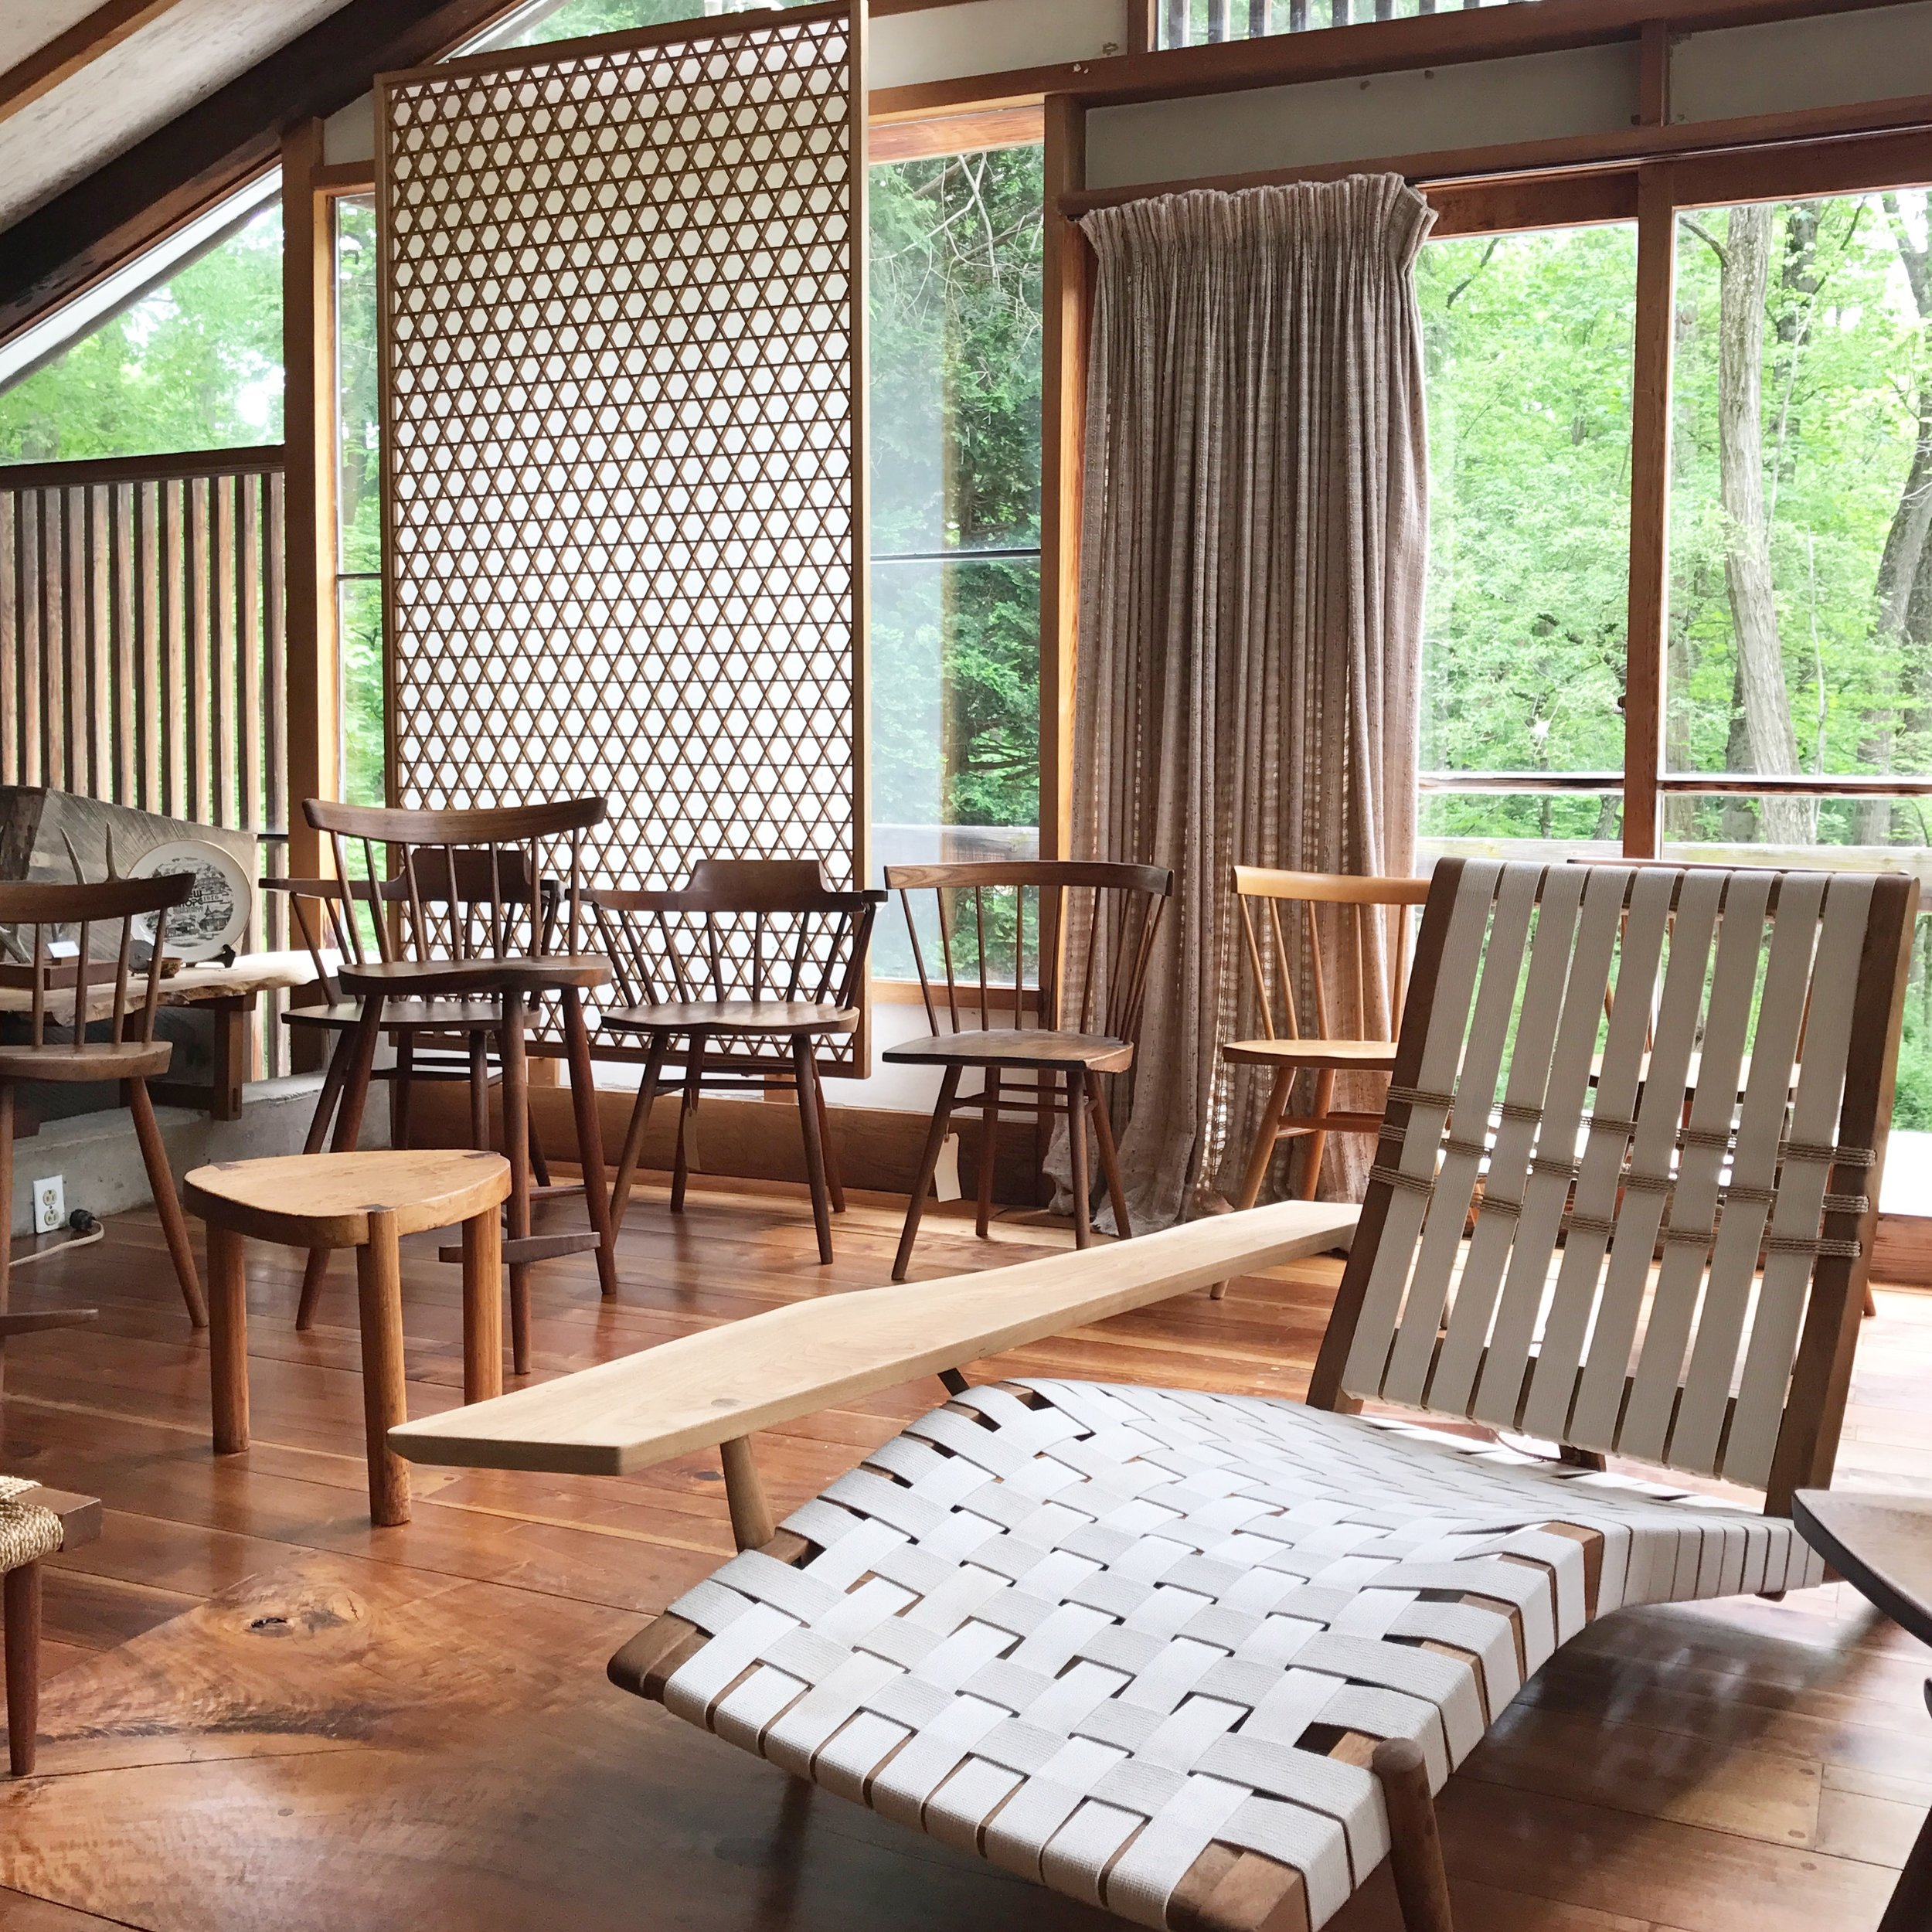 A collection of Nakashima furniture